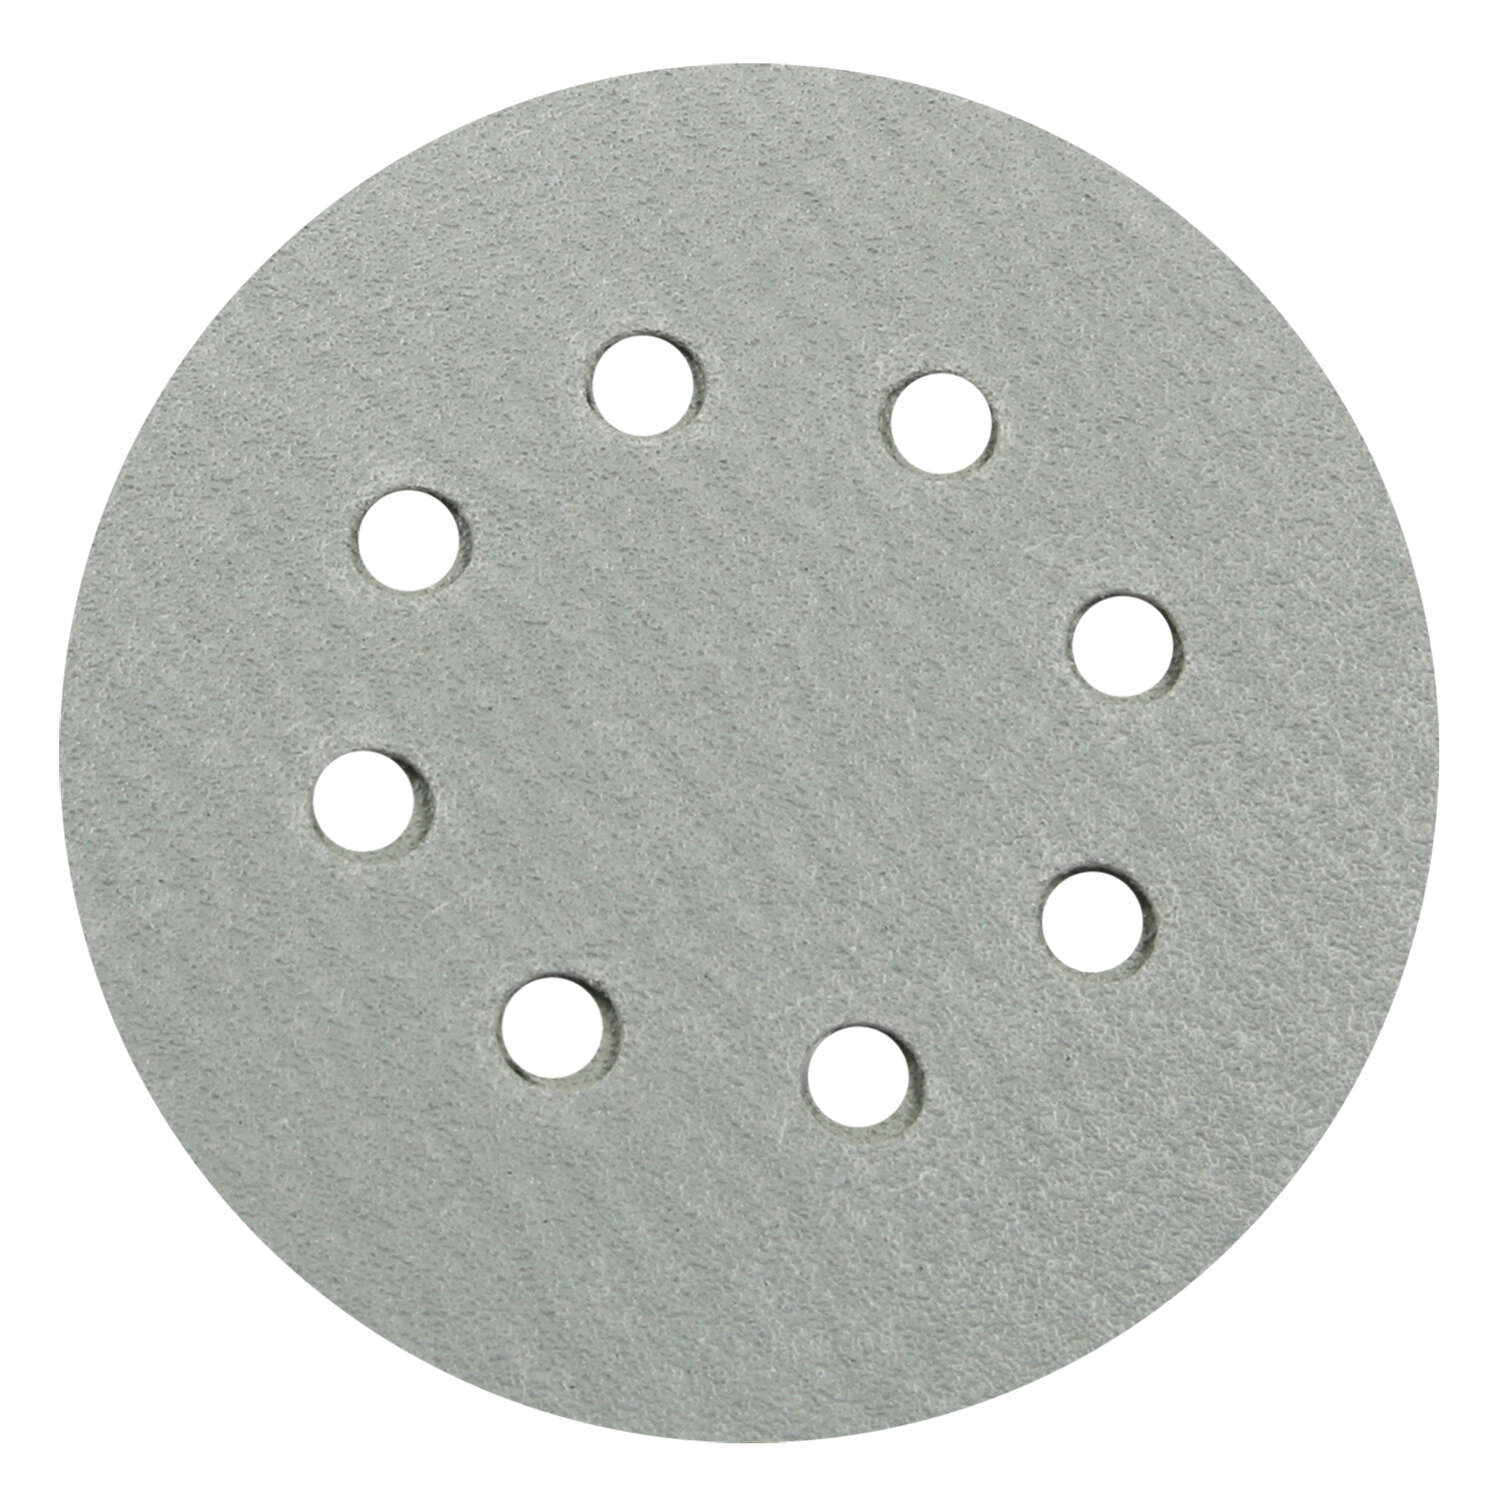 Shopsmith  5 in. Aluminum Oxide  80 Grit 15 pk Sanding Disc  Hook and Loop  Coarse